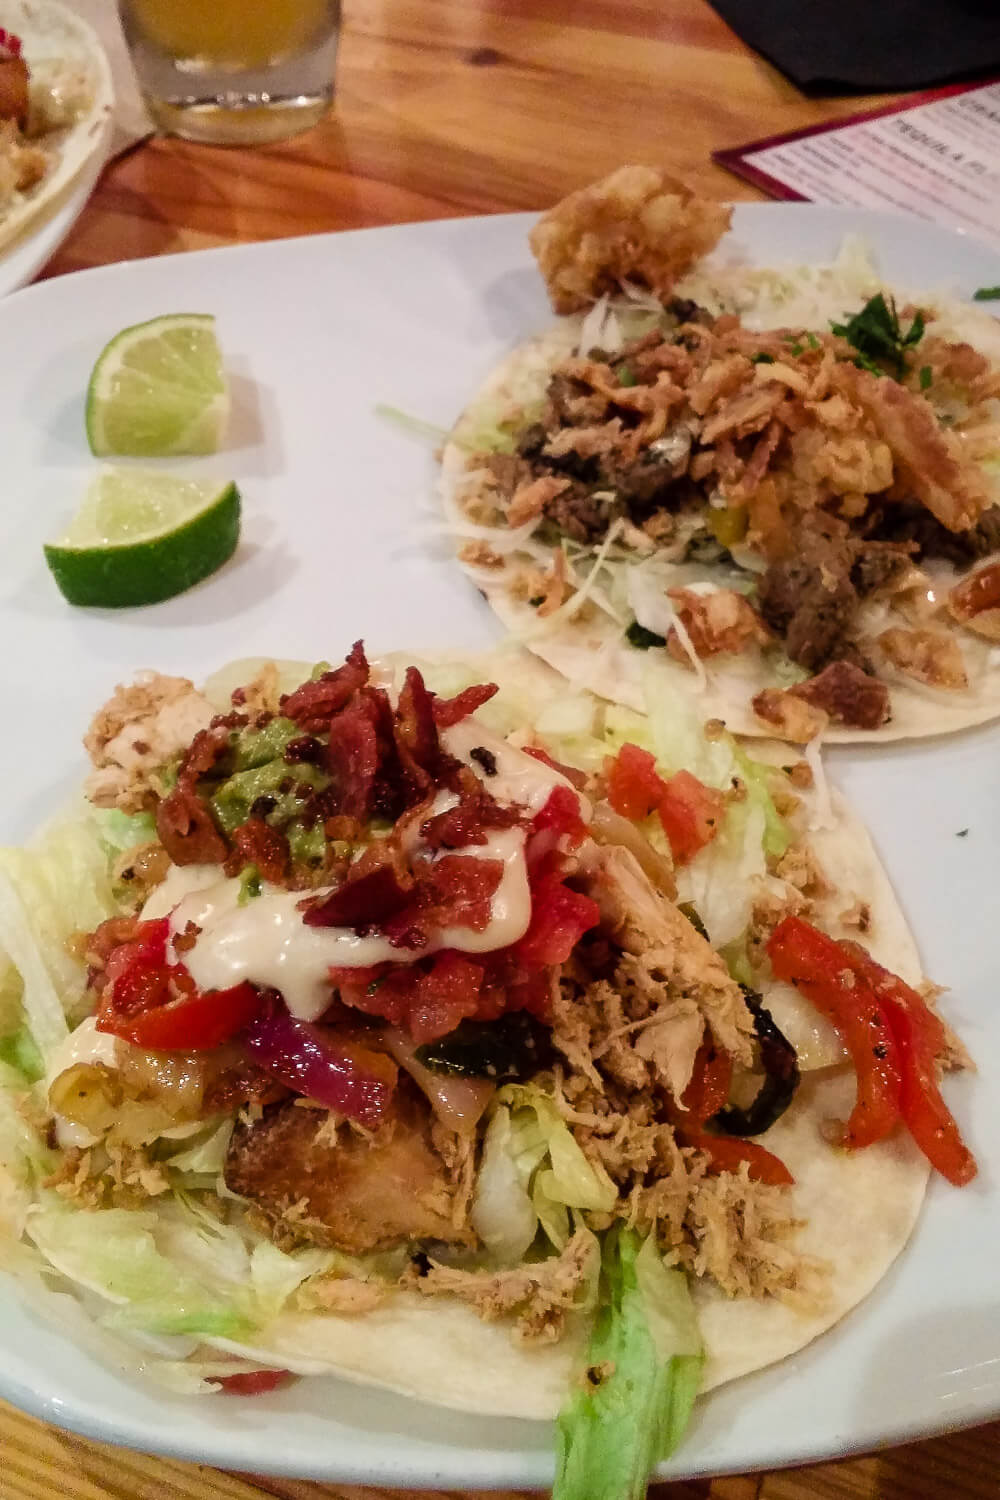 Where to find tacos in greenville sc